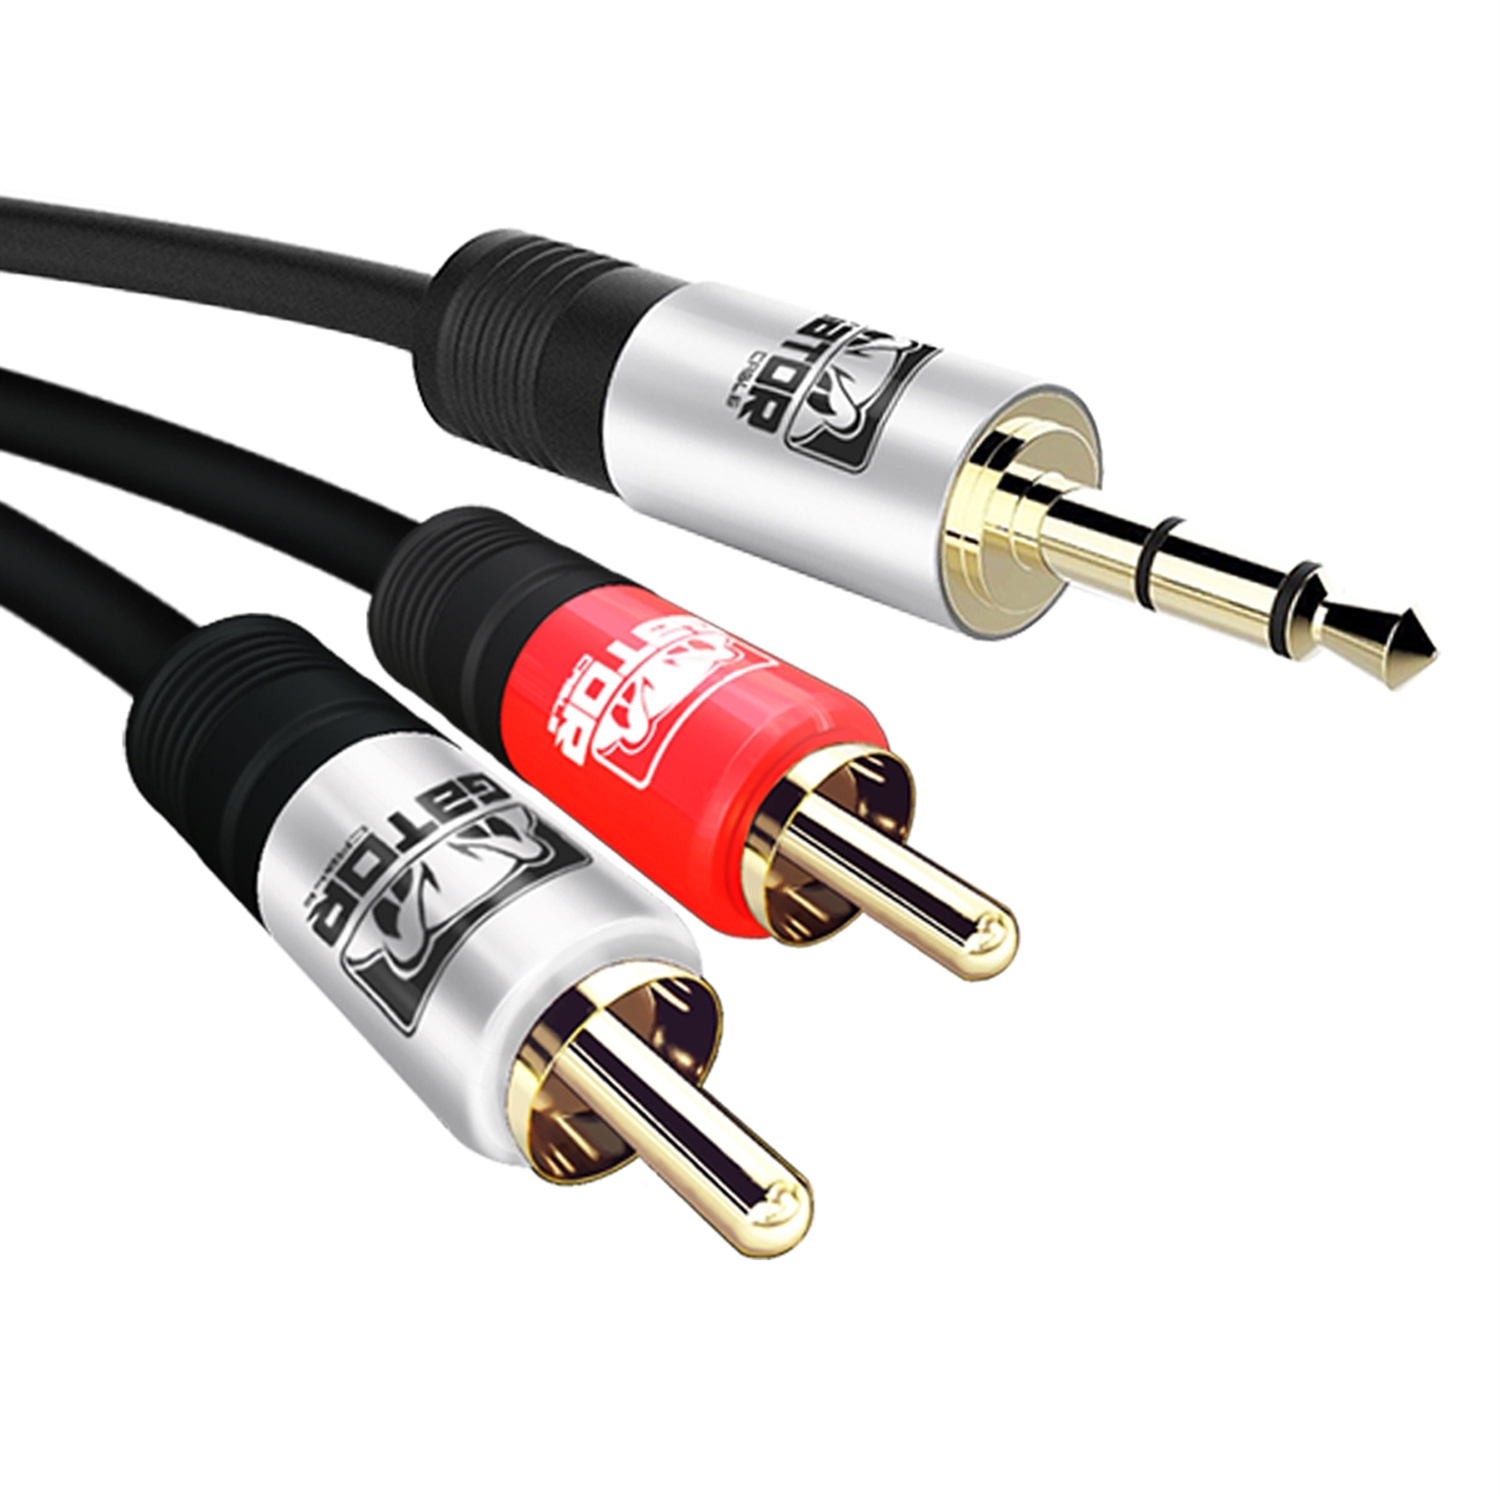 GATOR CABLE AUX to 2 RCA cable - SILVER/RED-SILVER - 15 FT - Gold Plated Connectors - Auxiliary 3.5mm Audio Plug Stereo Phone Cable Cord